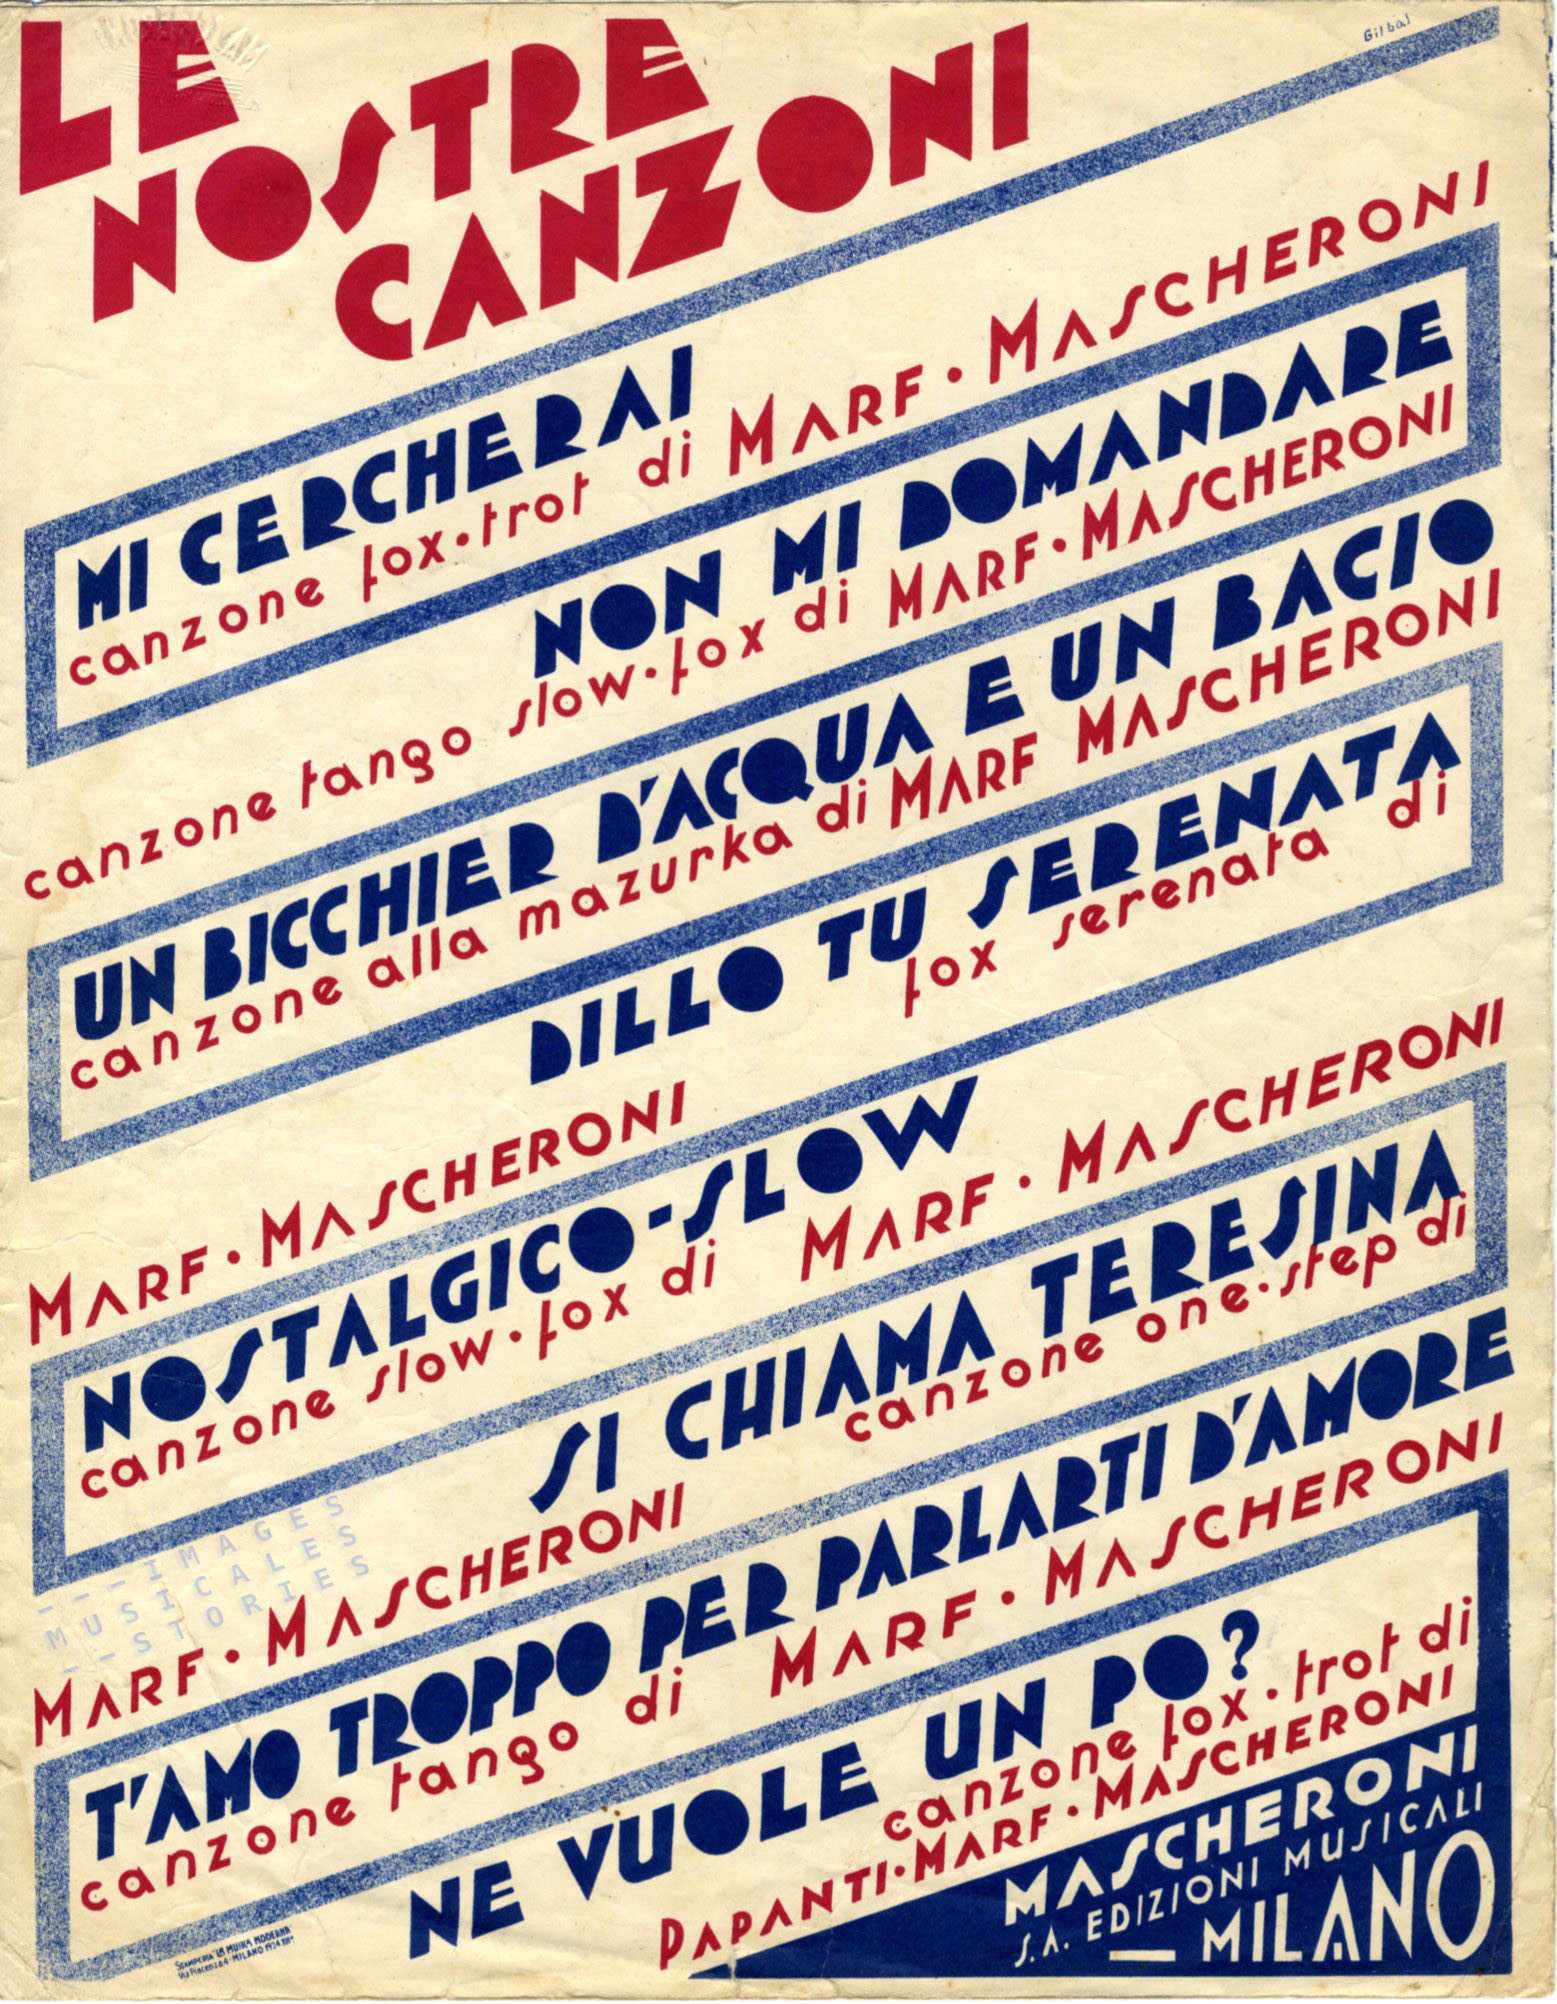 Catalog publicity for publisher Mascheroni. Illustrated by Gilbàs